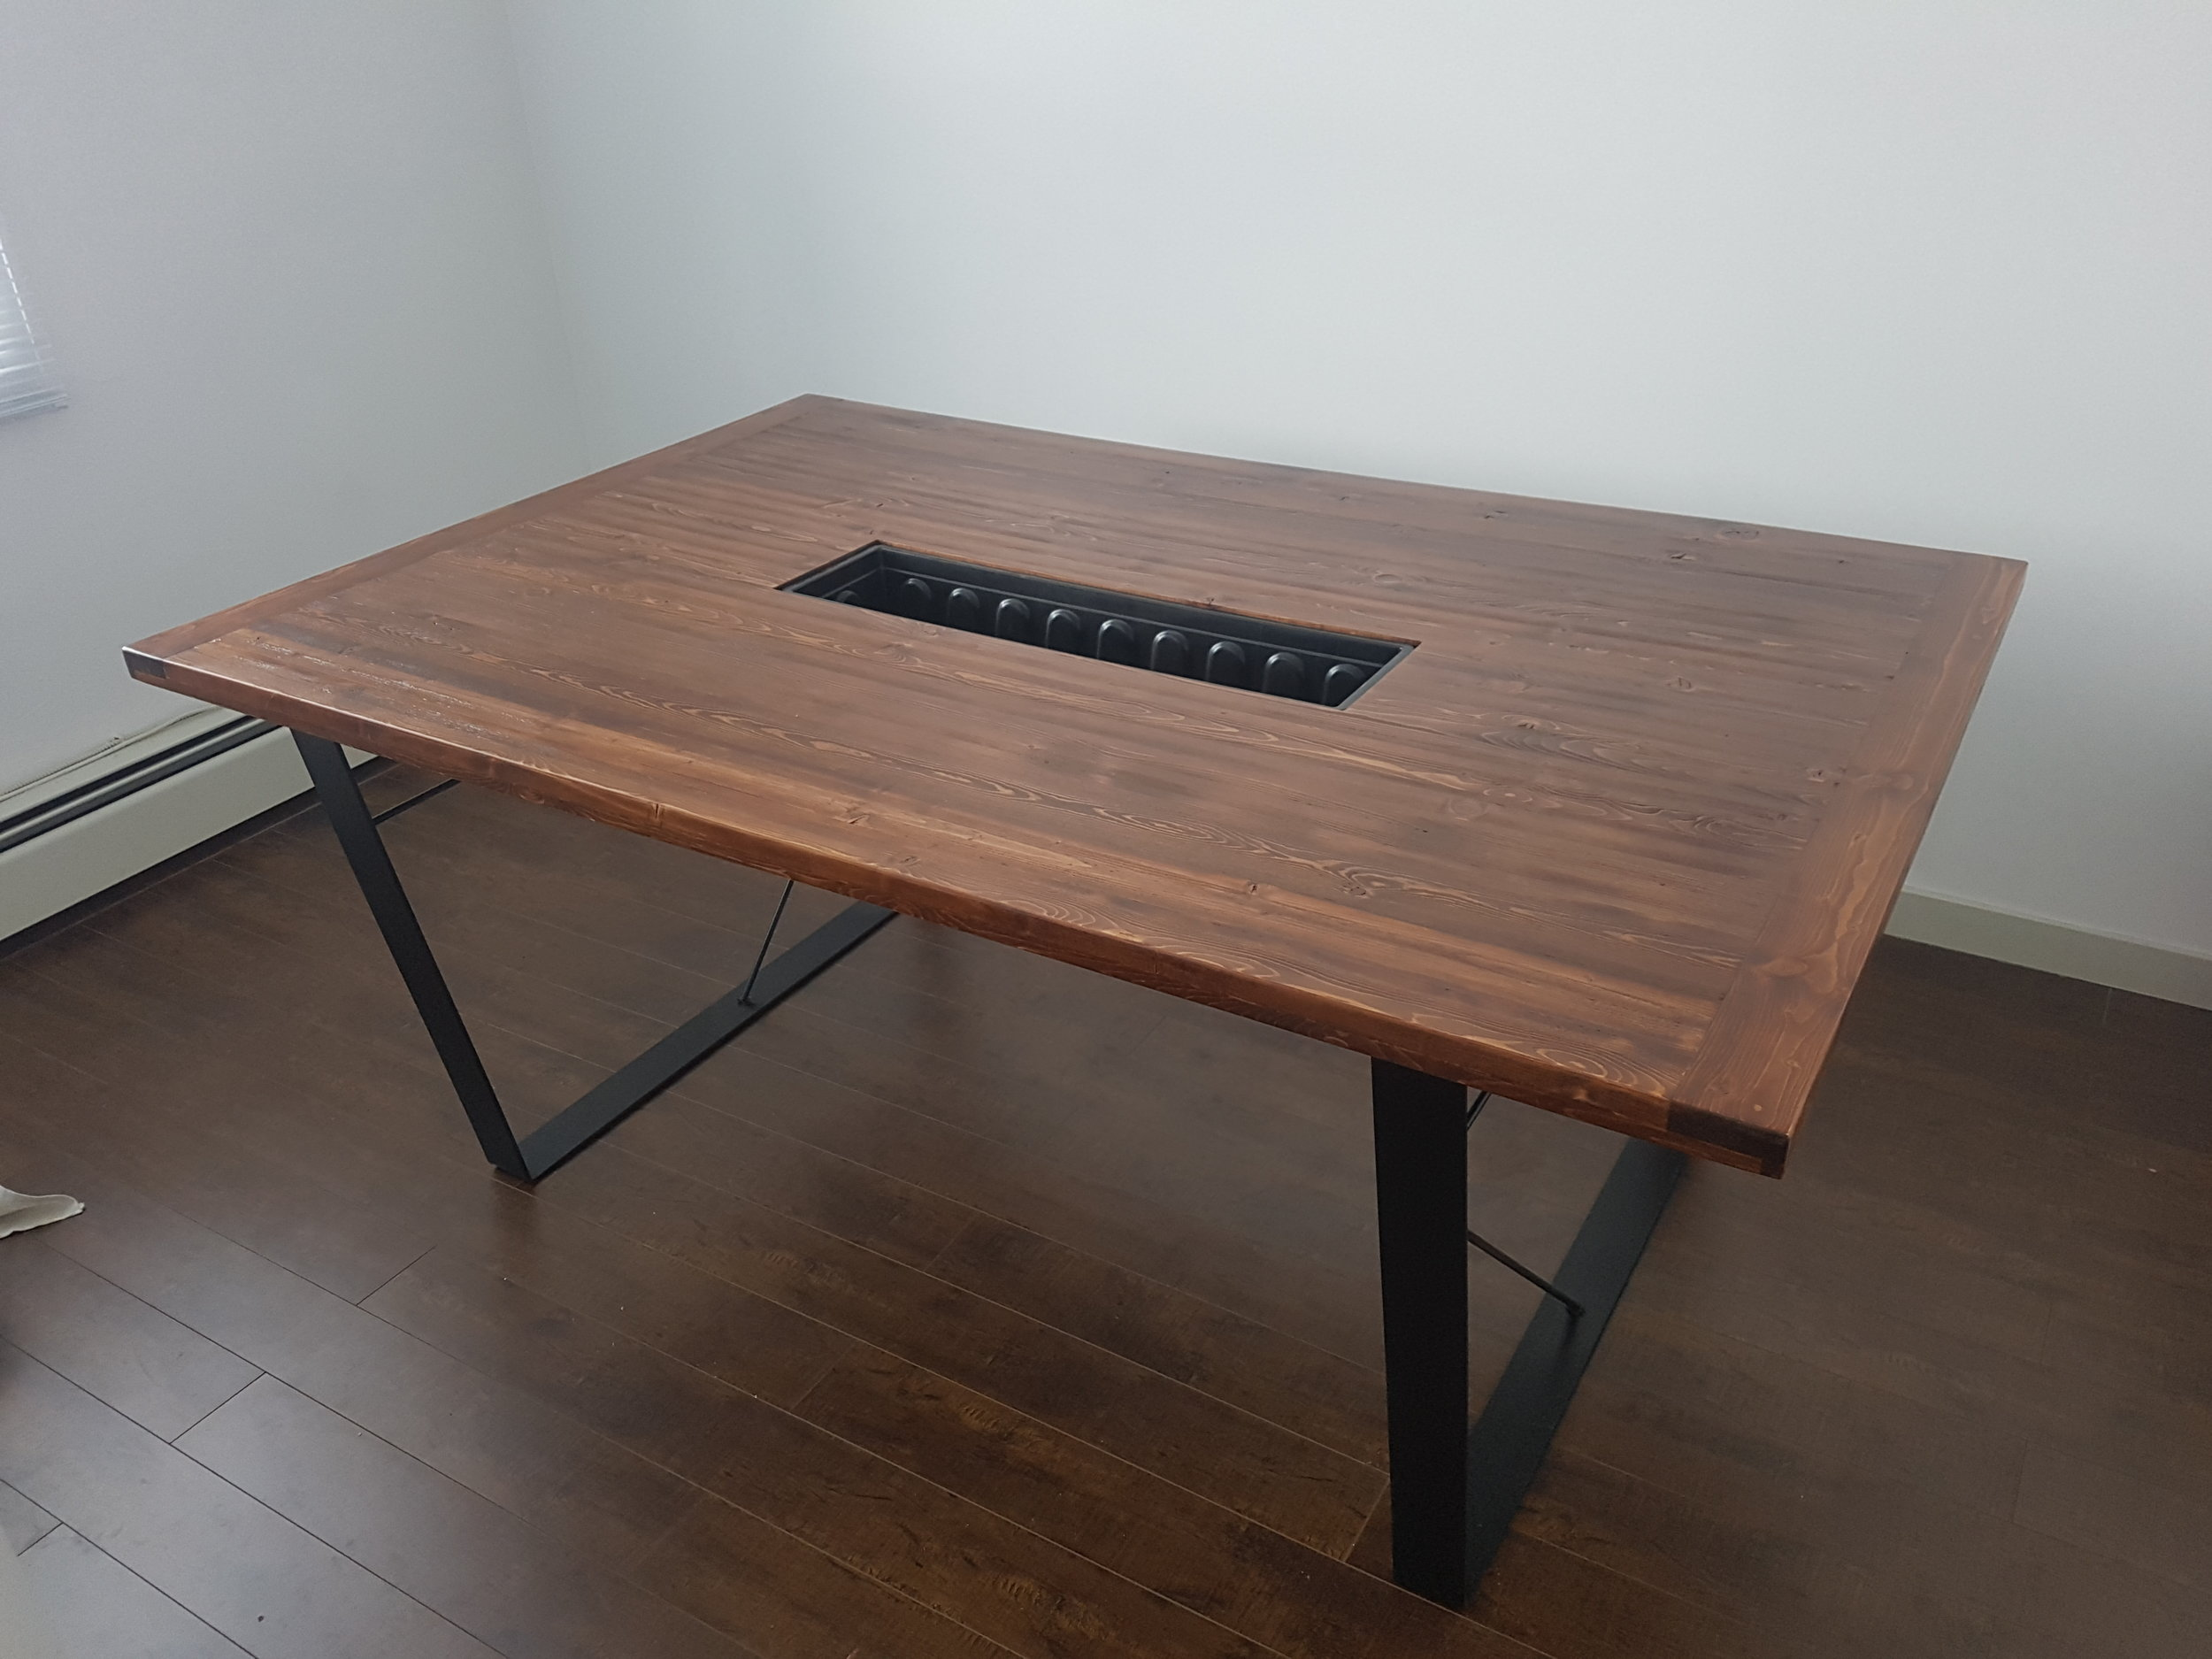 Boardroom Table in Early American with Bent Industrial Legs & removable cooler/plant holder.  Poolservice Productions, Chinatown Vancouver, BC.